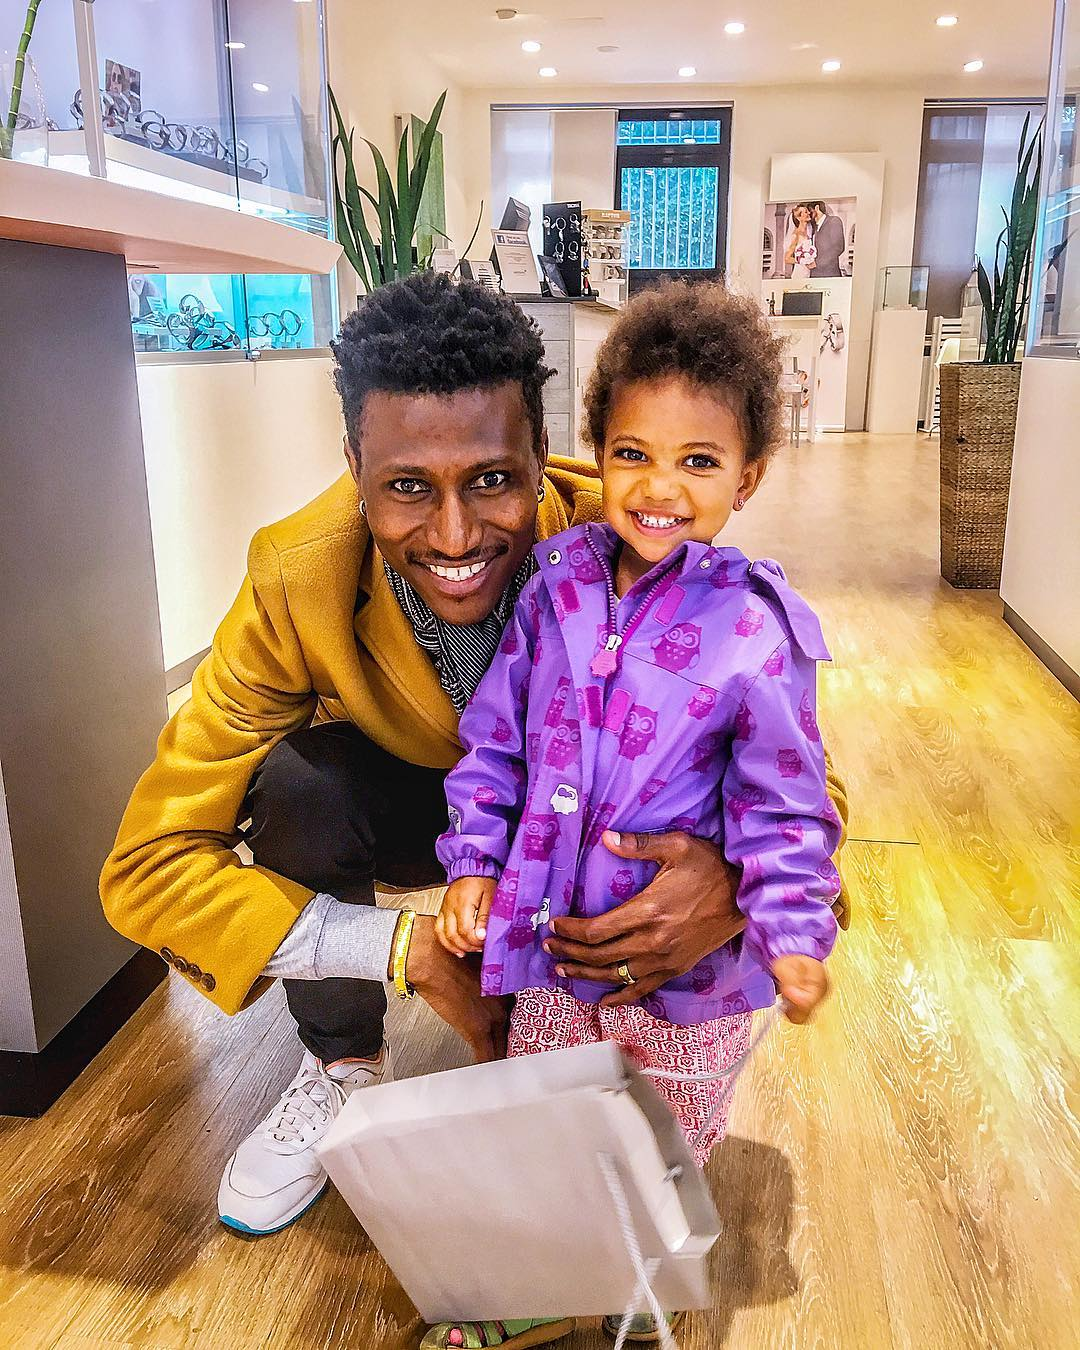 Octopizzo with his daughter Akinyi. Photo credit: Instagram/Octopizzo